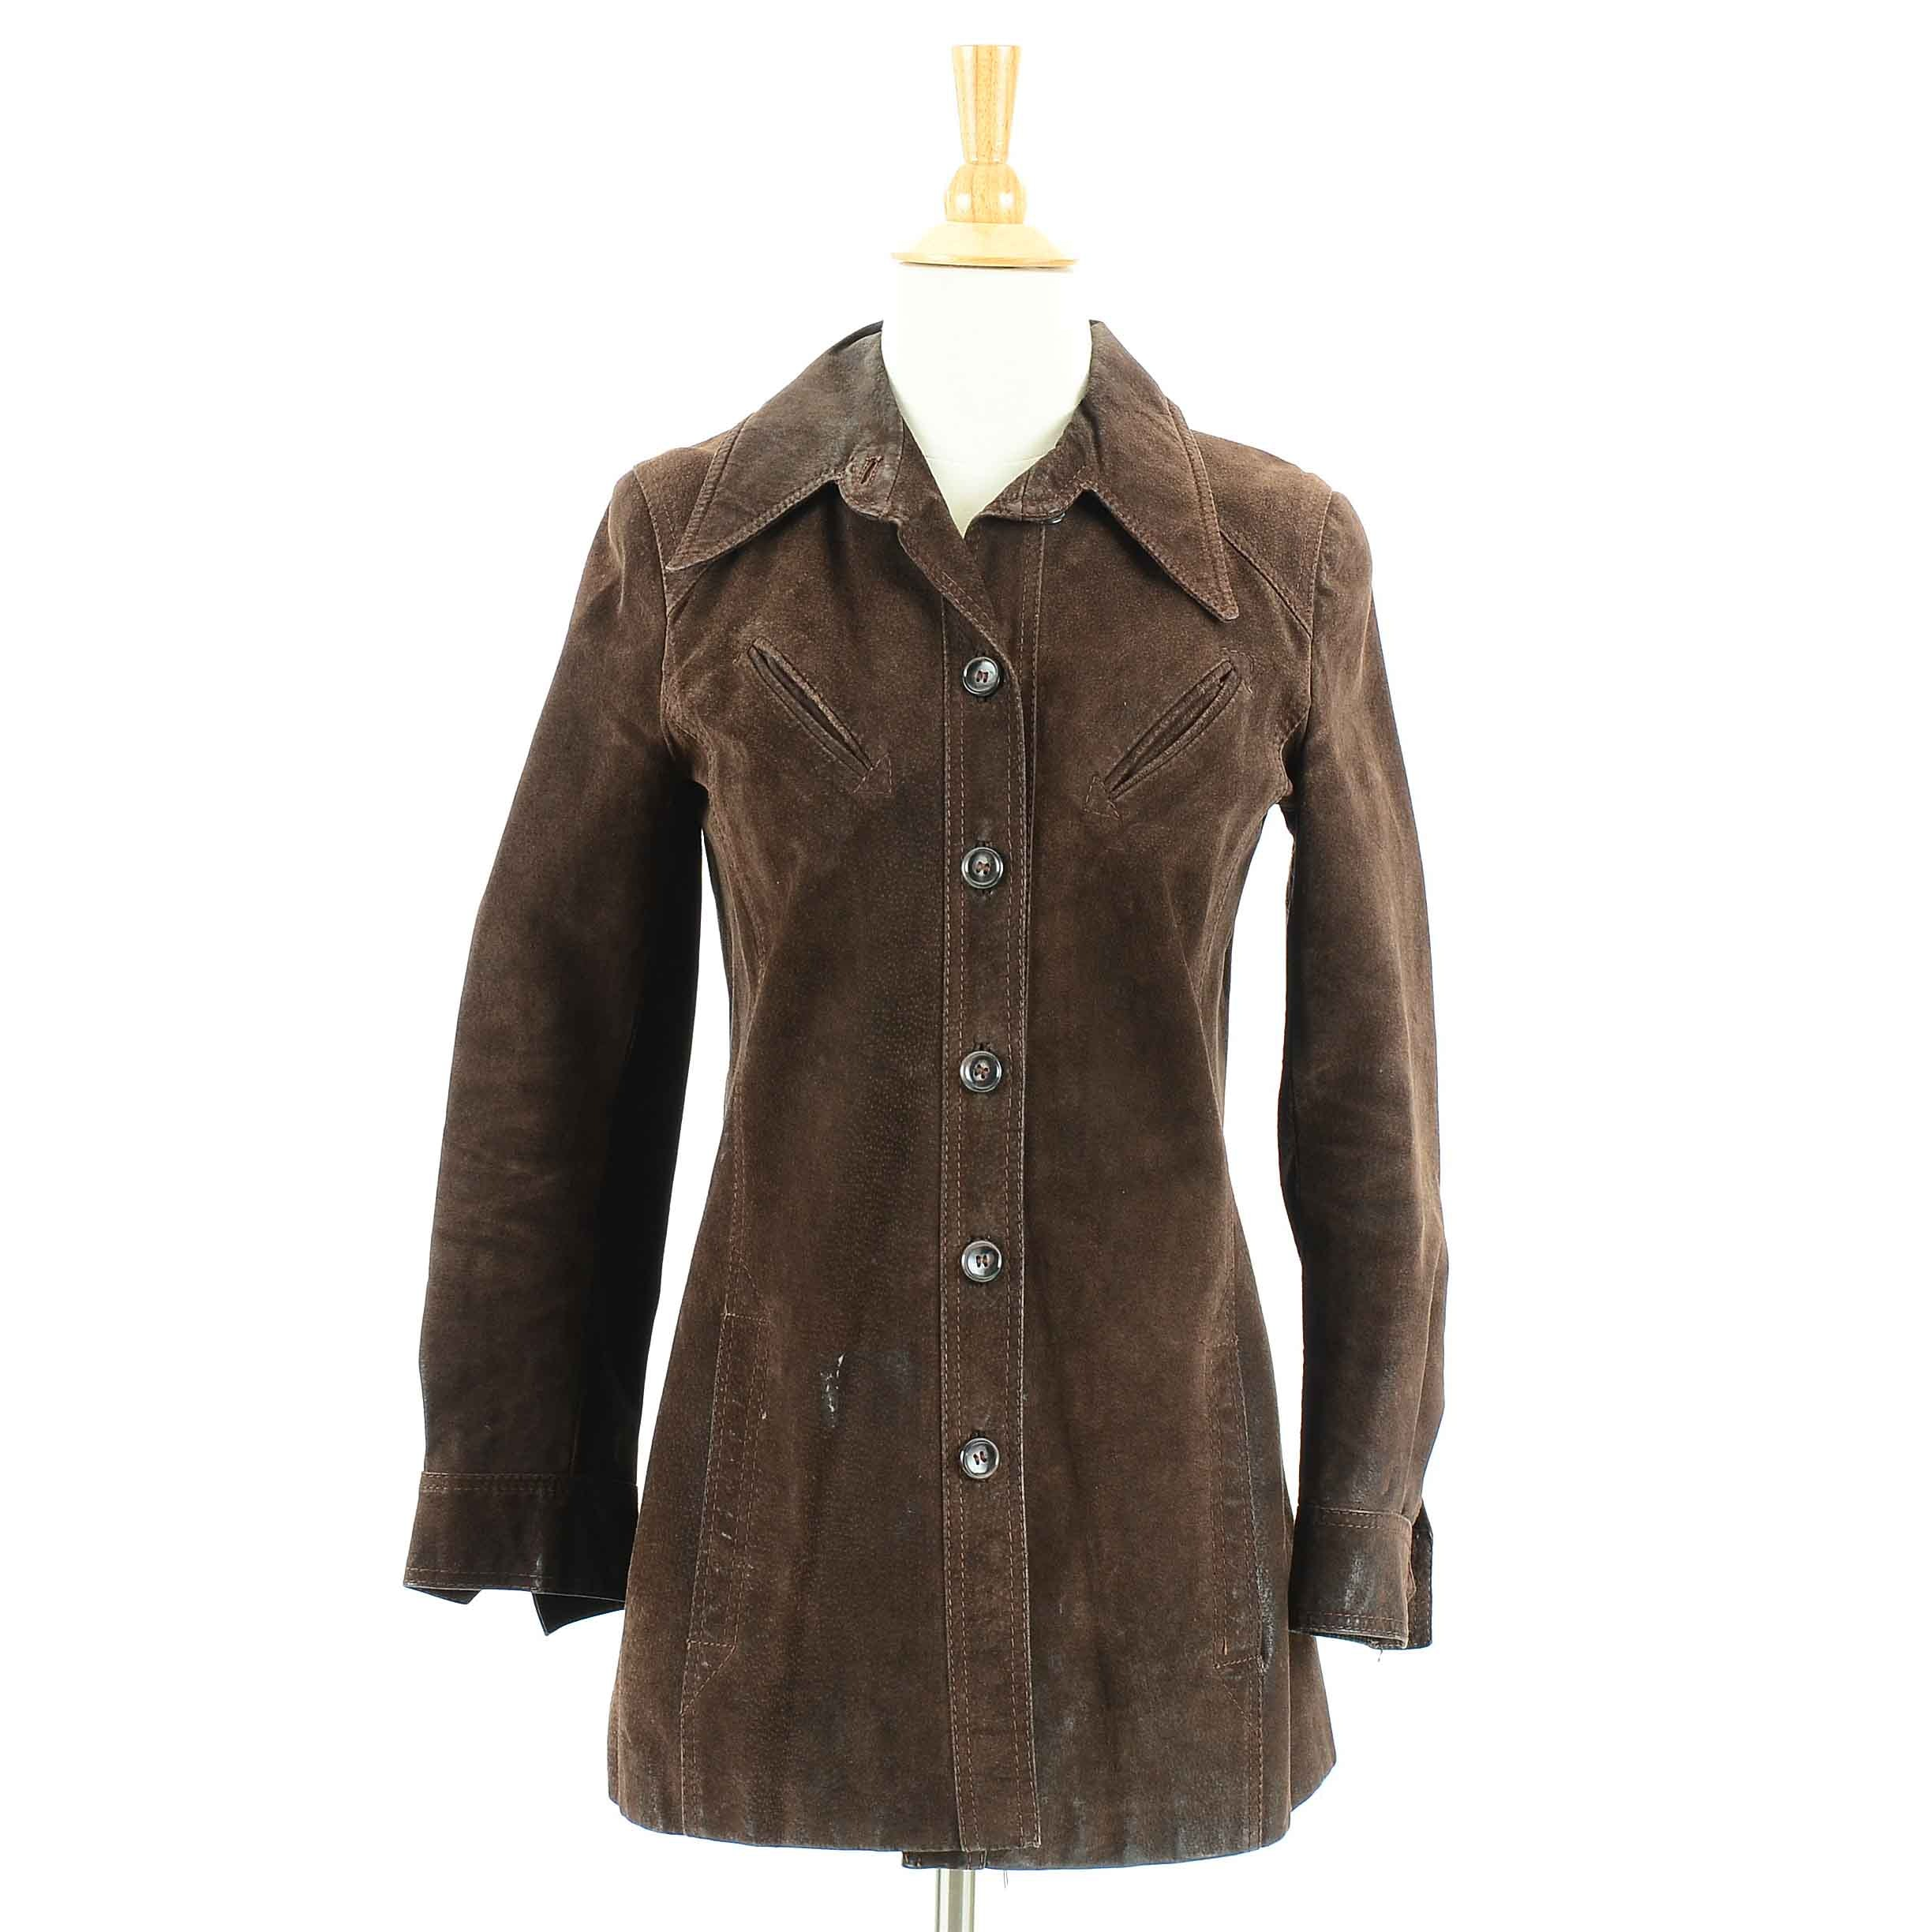 Women's 1970s Vintage Brown Suede Jacket